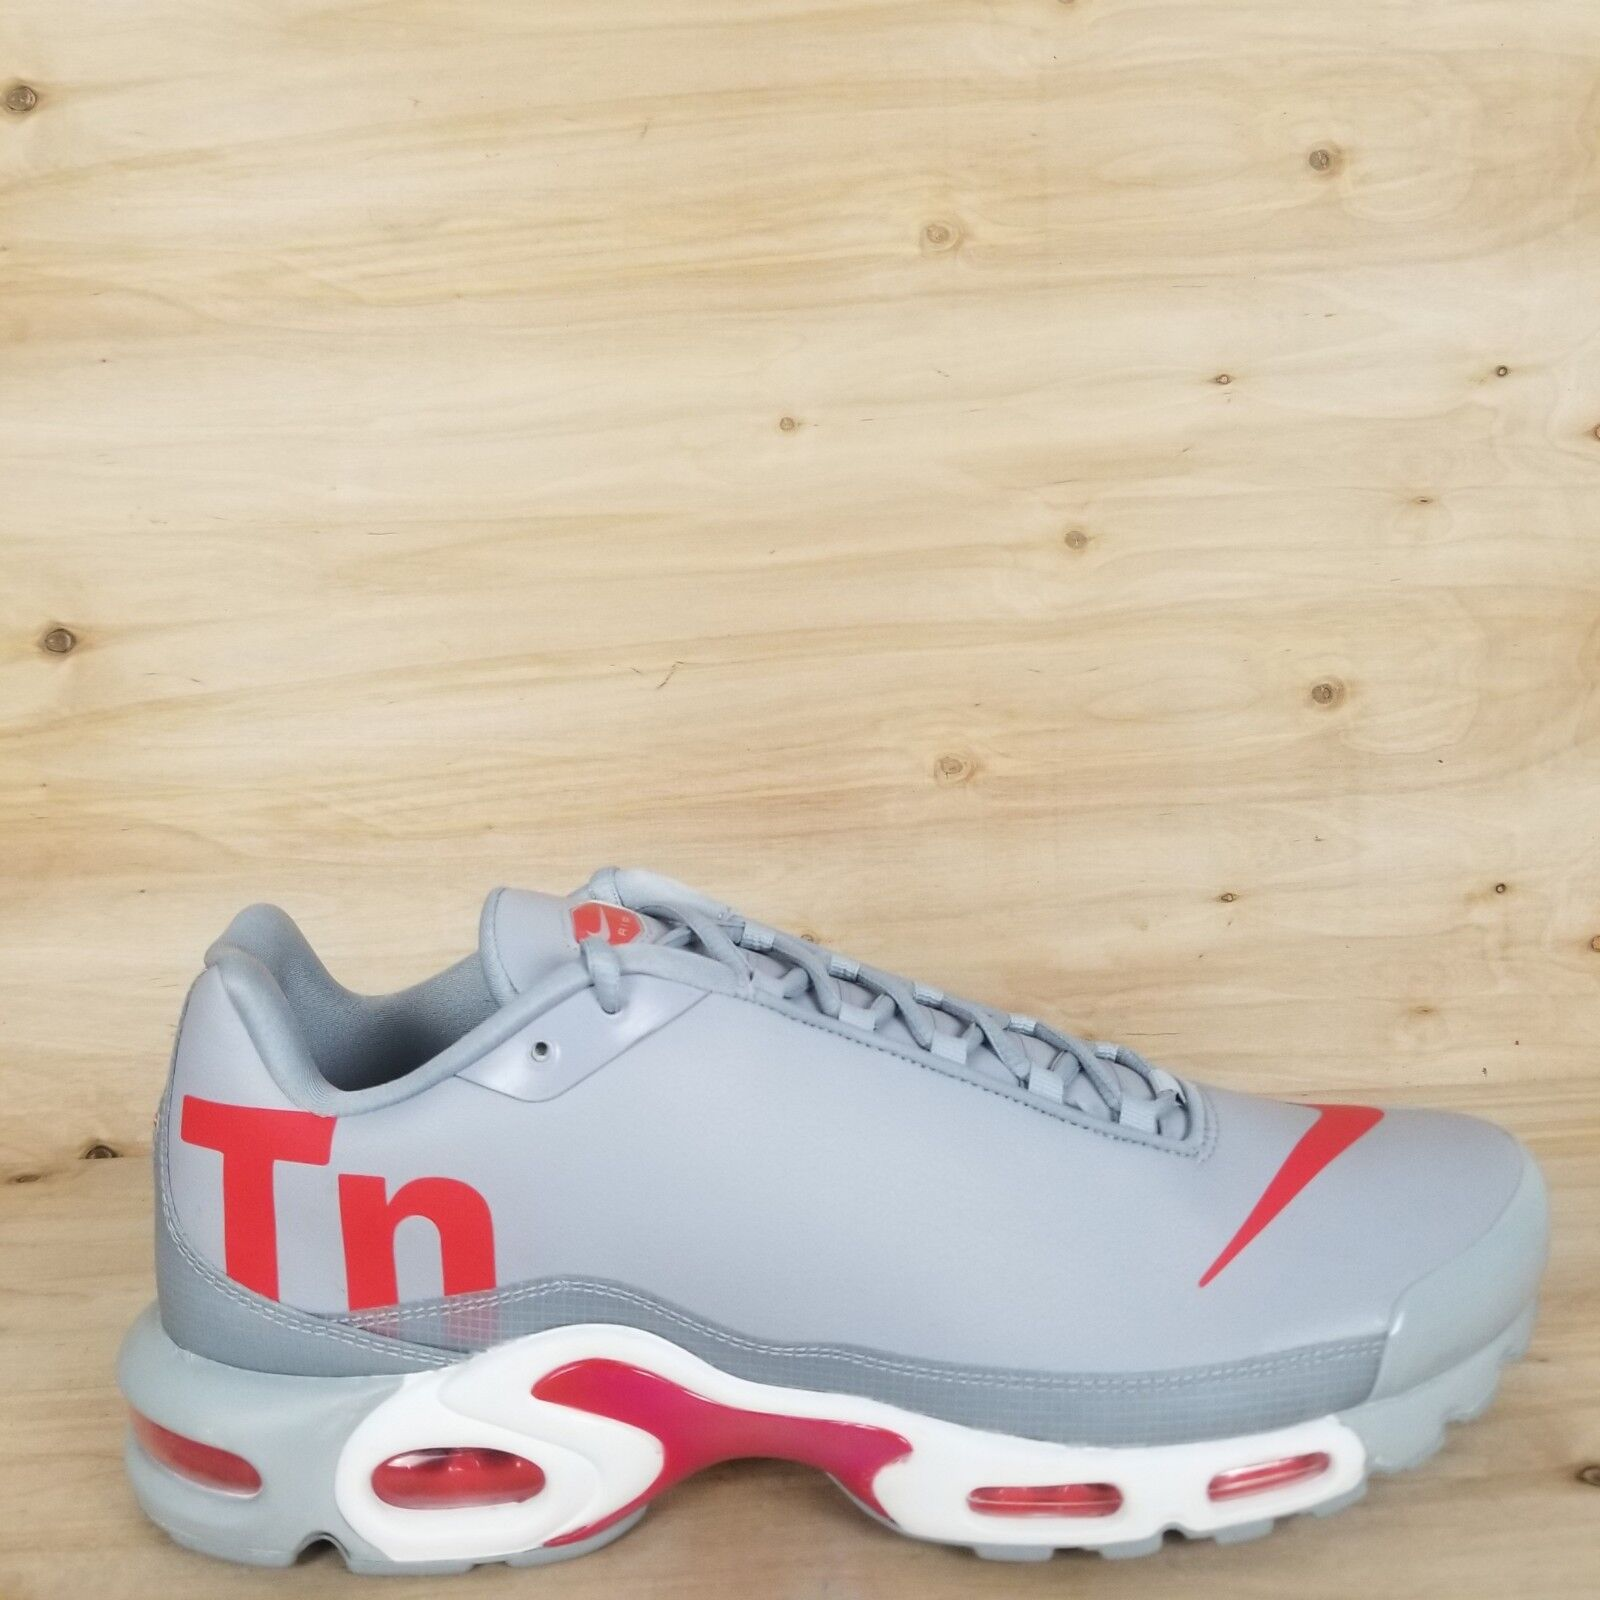 43ae5f1088 NIKE AIR MAX PLUS SE RUNNING MERCURIAL WOLF GREY RED MEN'S SZ 13-15 TN SHOES  neihtb4678-Athletic Shoes